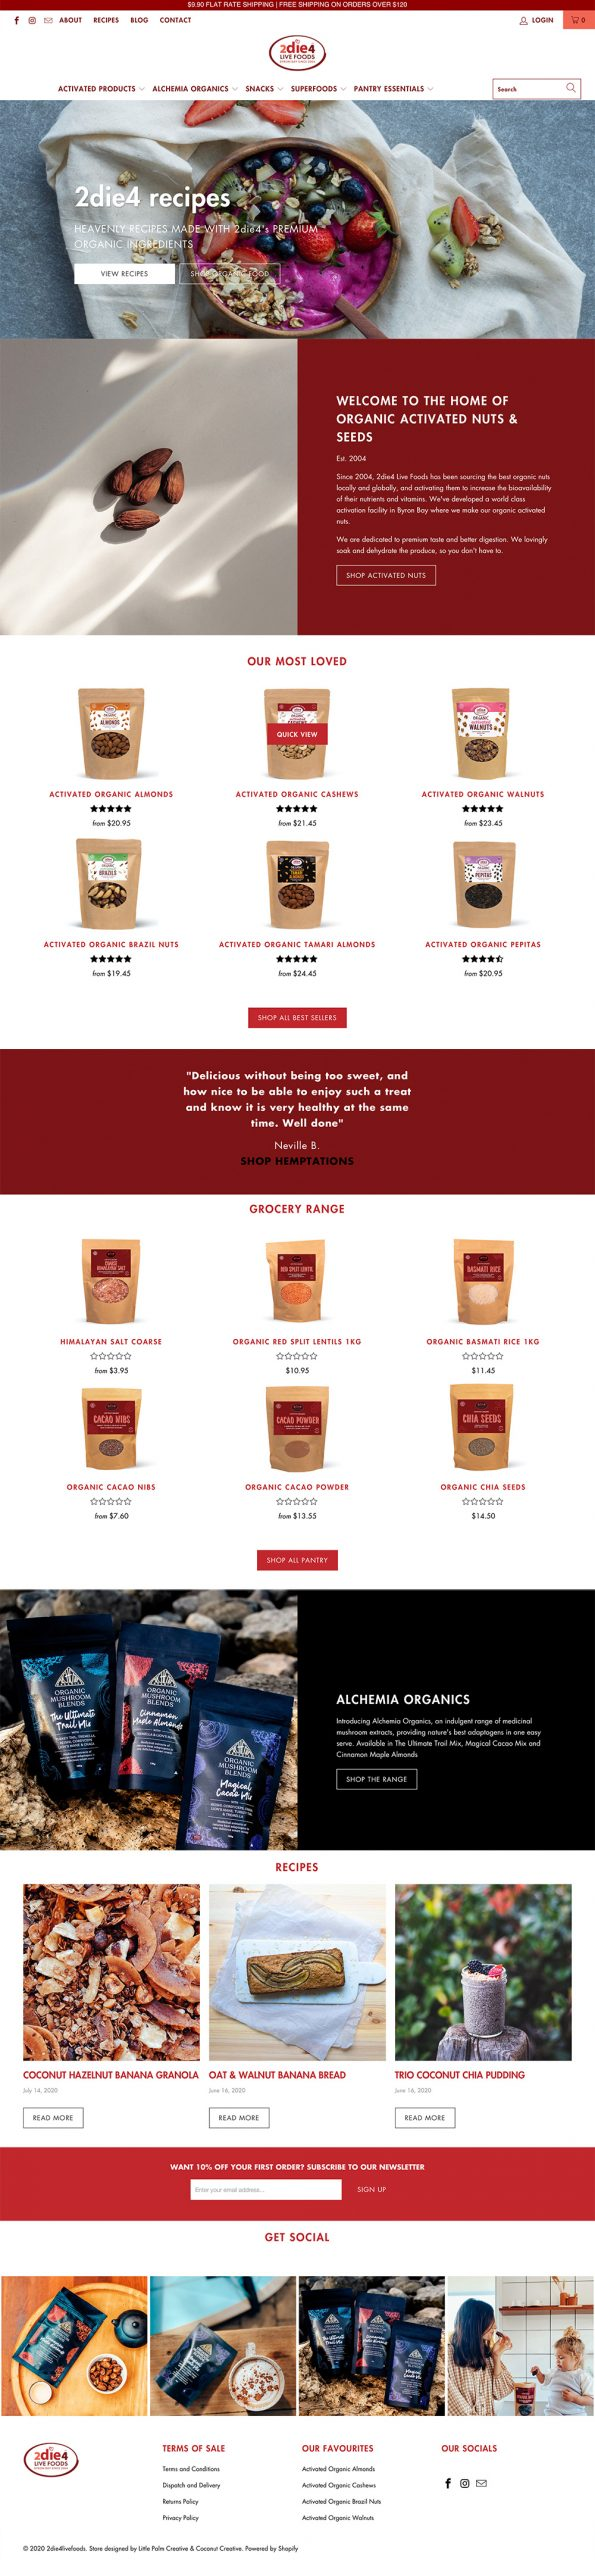 2die4 Live Foods Website Design After Refresh by Little Palm Creative| Shopify Website Redesign